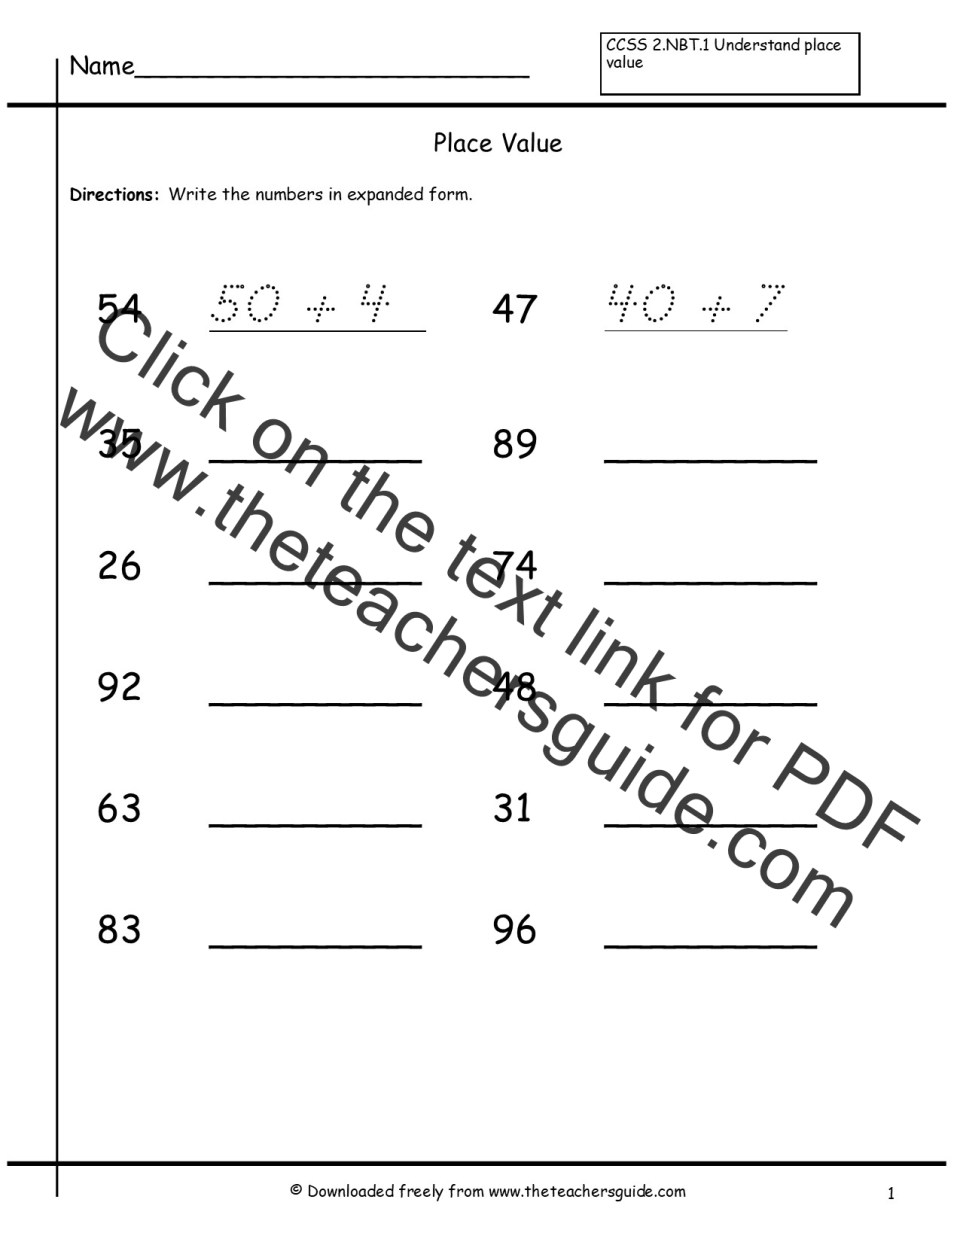 Image Result For Math Worksheet Expanded